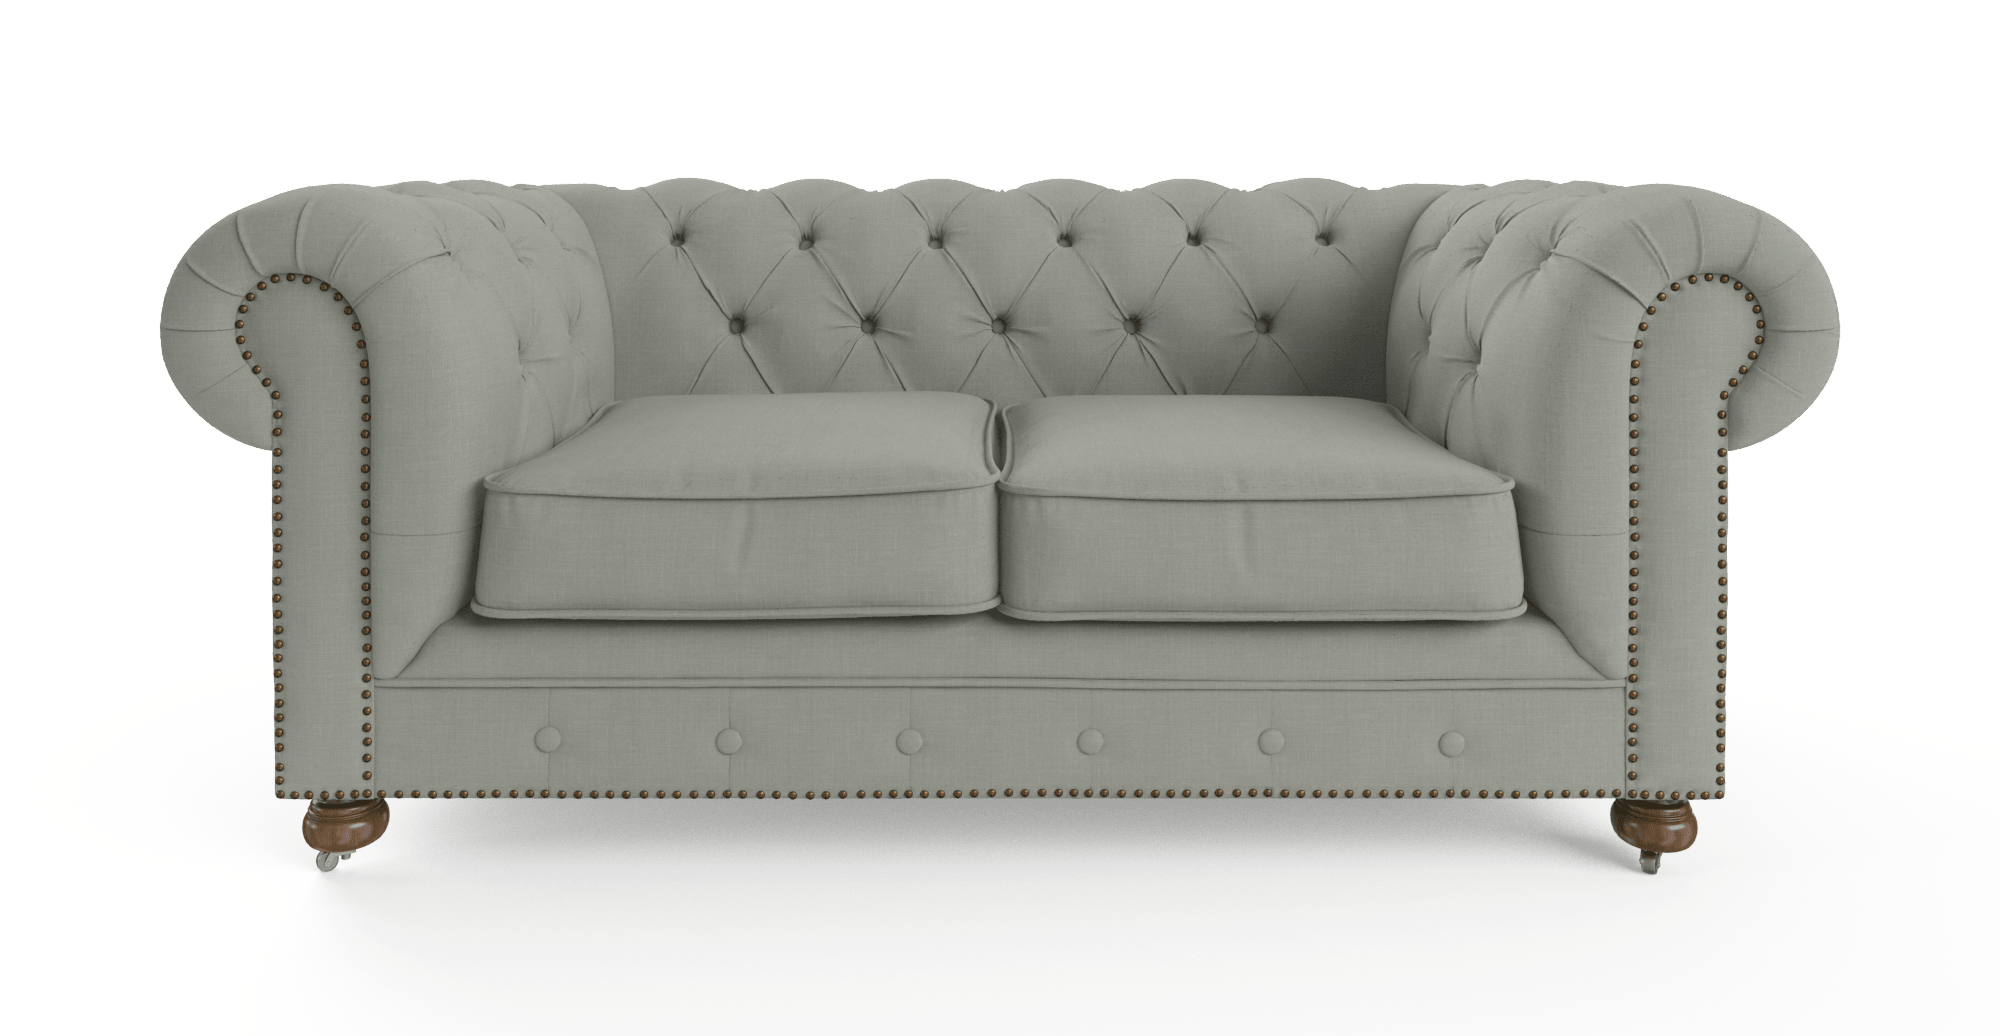 Buy Camden Chesterfield 3 Seater Sofa Online in Australia | BROSA